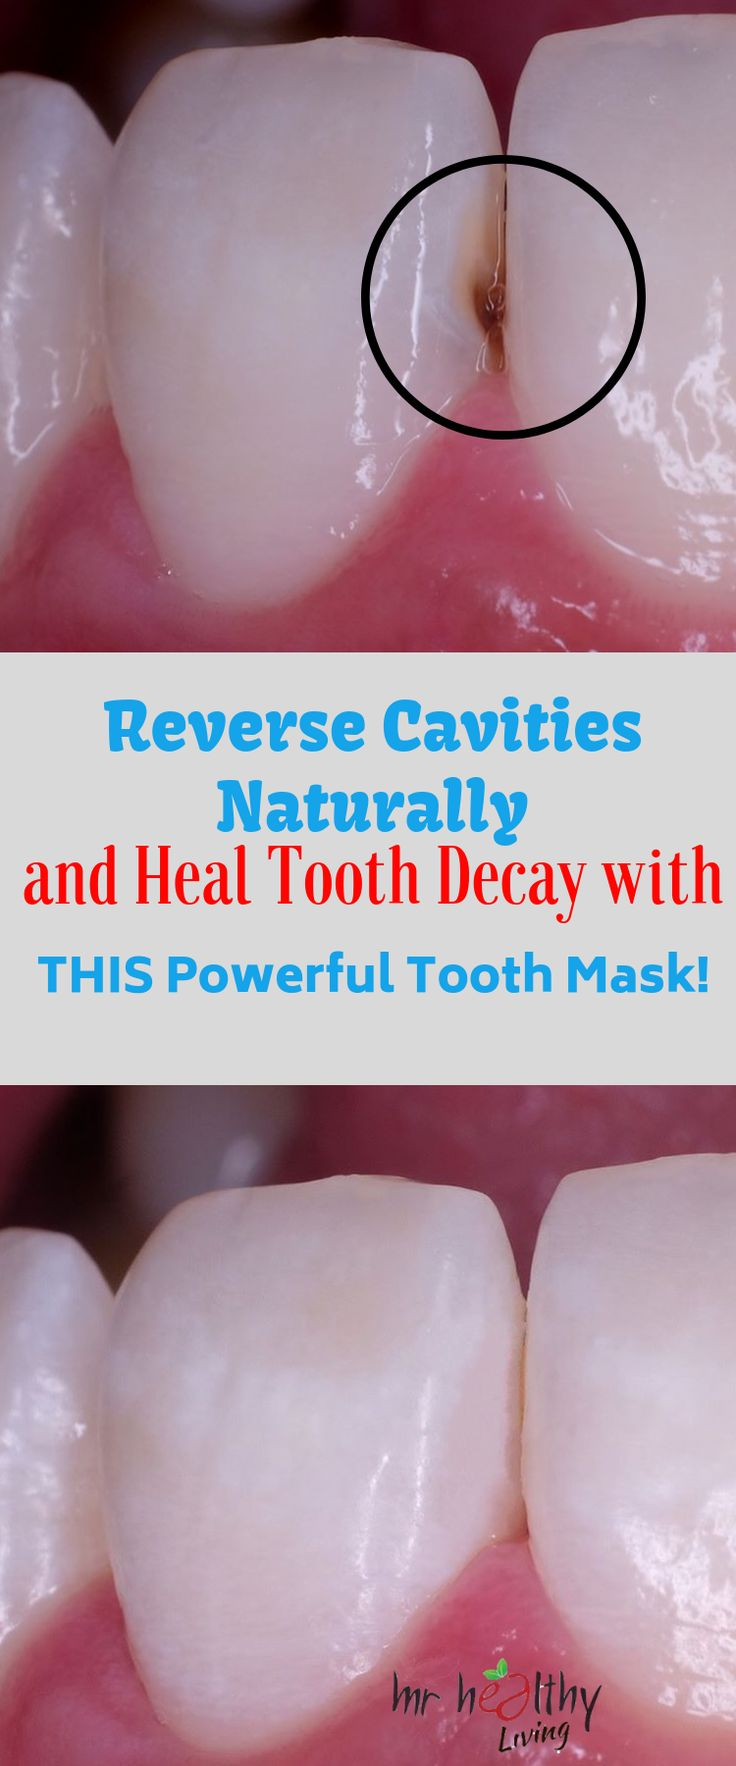 Get rid of tooth decay and cavities naturally with these homemade tooth masks!